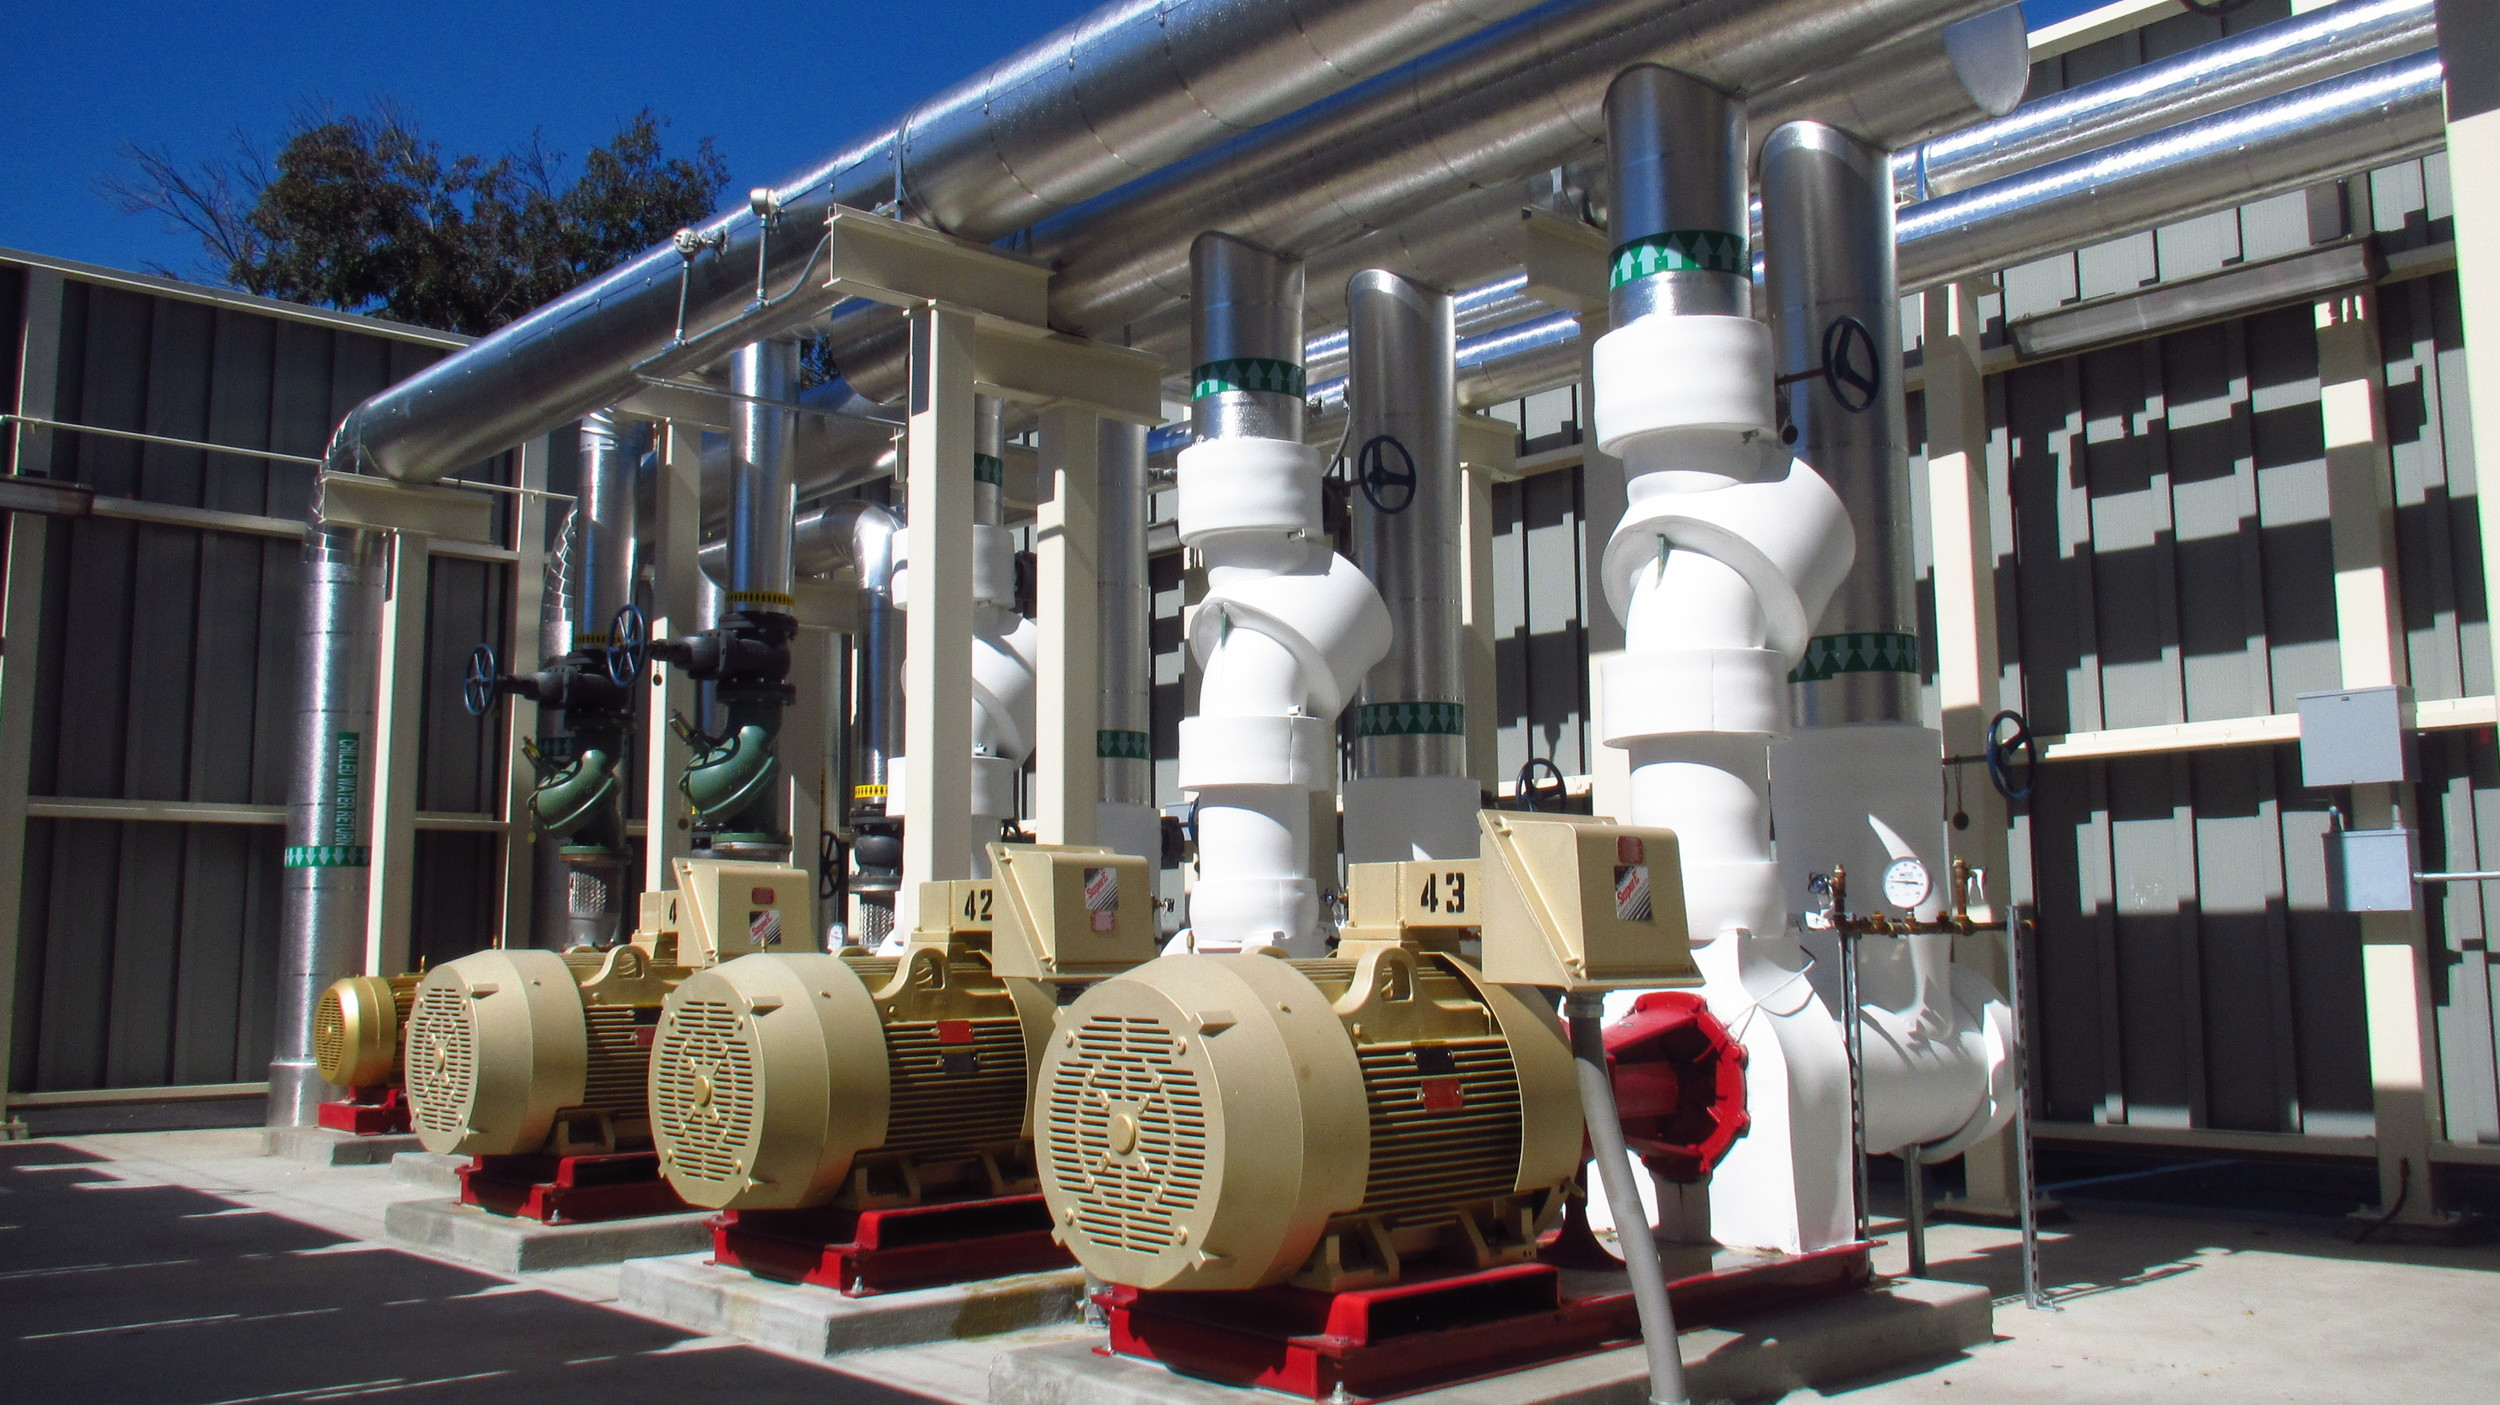 Hydronic Pumps at Lockheed Martin Space Center